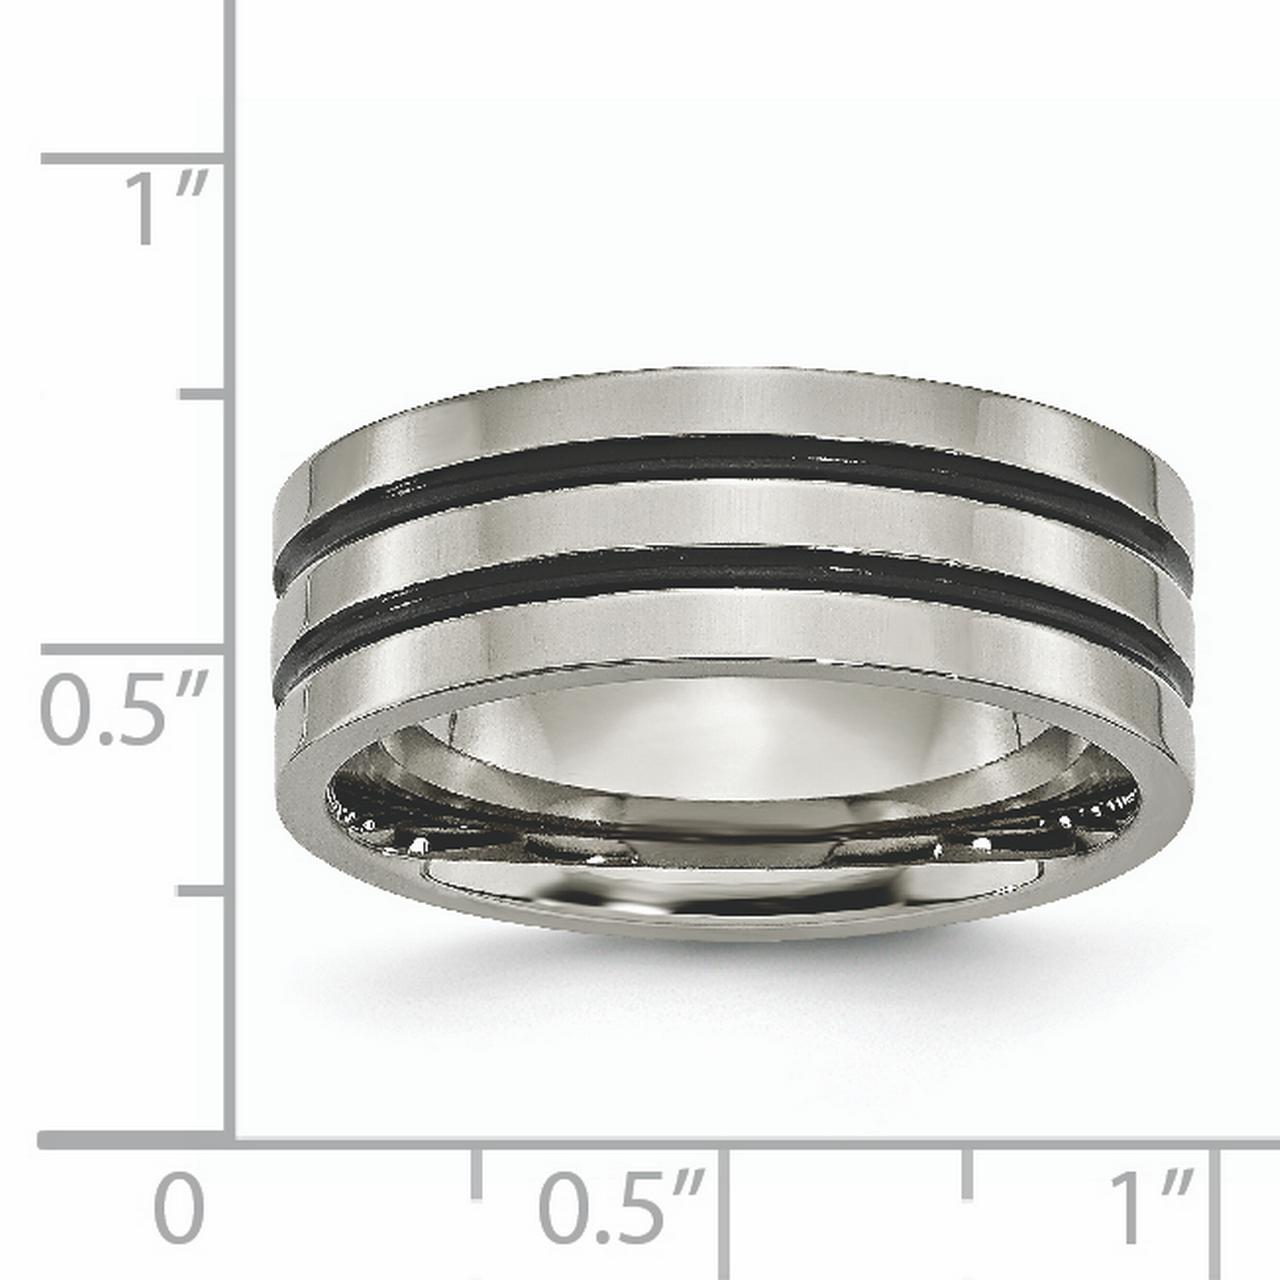 Titanium Enameled Grooved Flat 8mm Wedding Ring Band Size 10.00 Fashion Jewelry Gifts For Women For Her - image 3 of 6